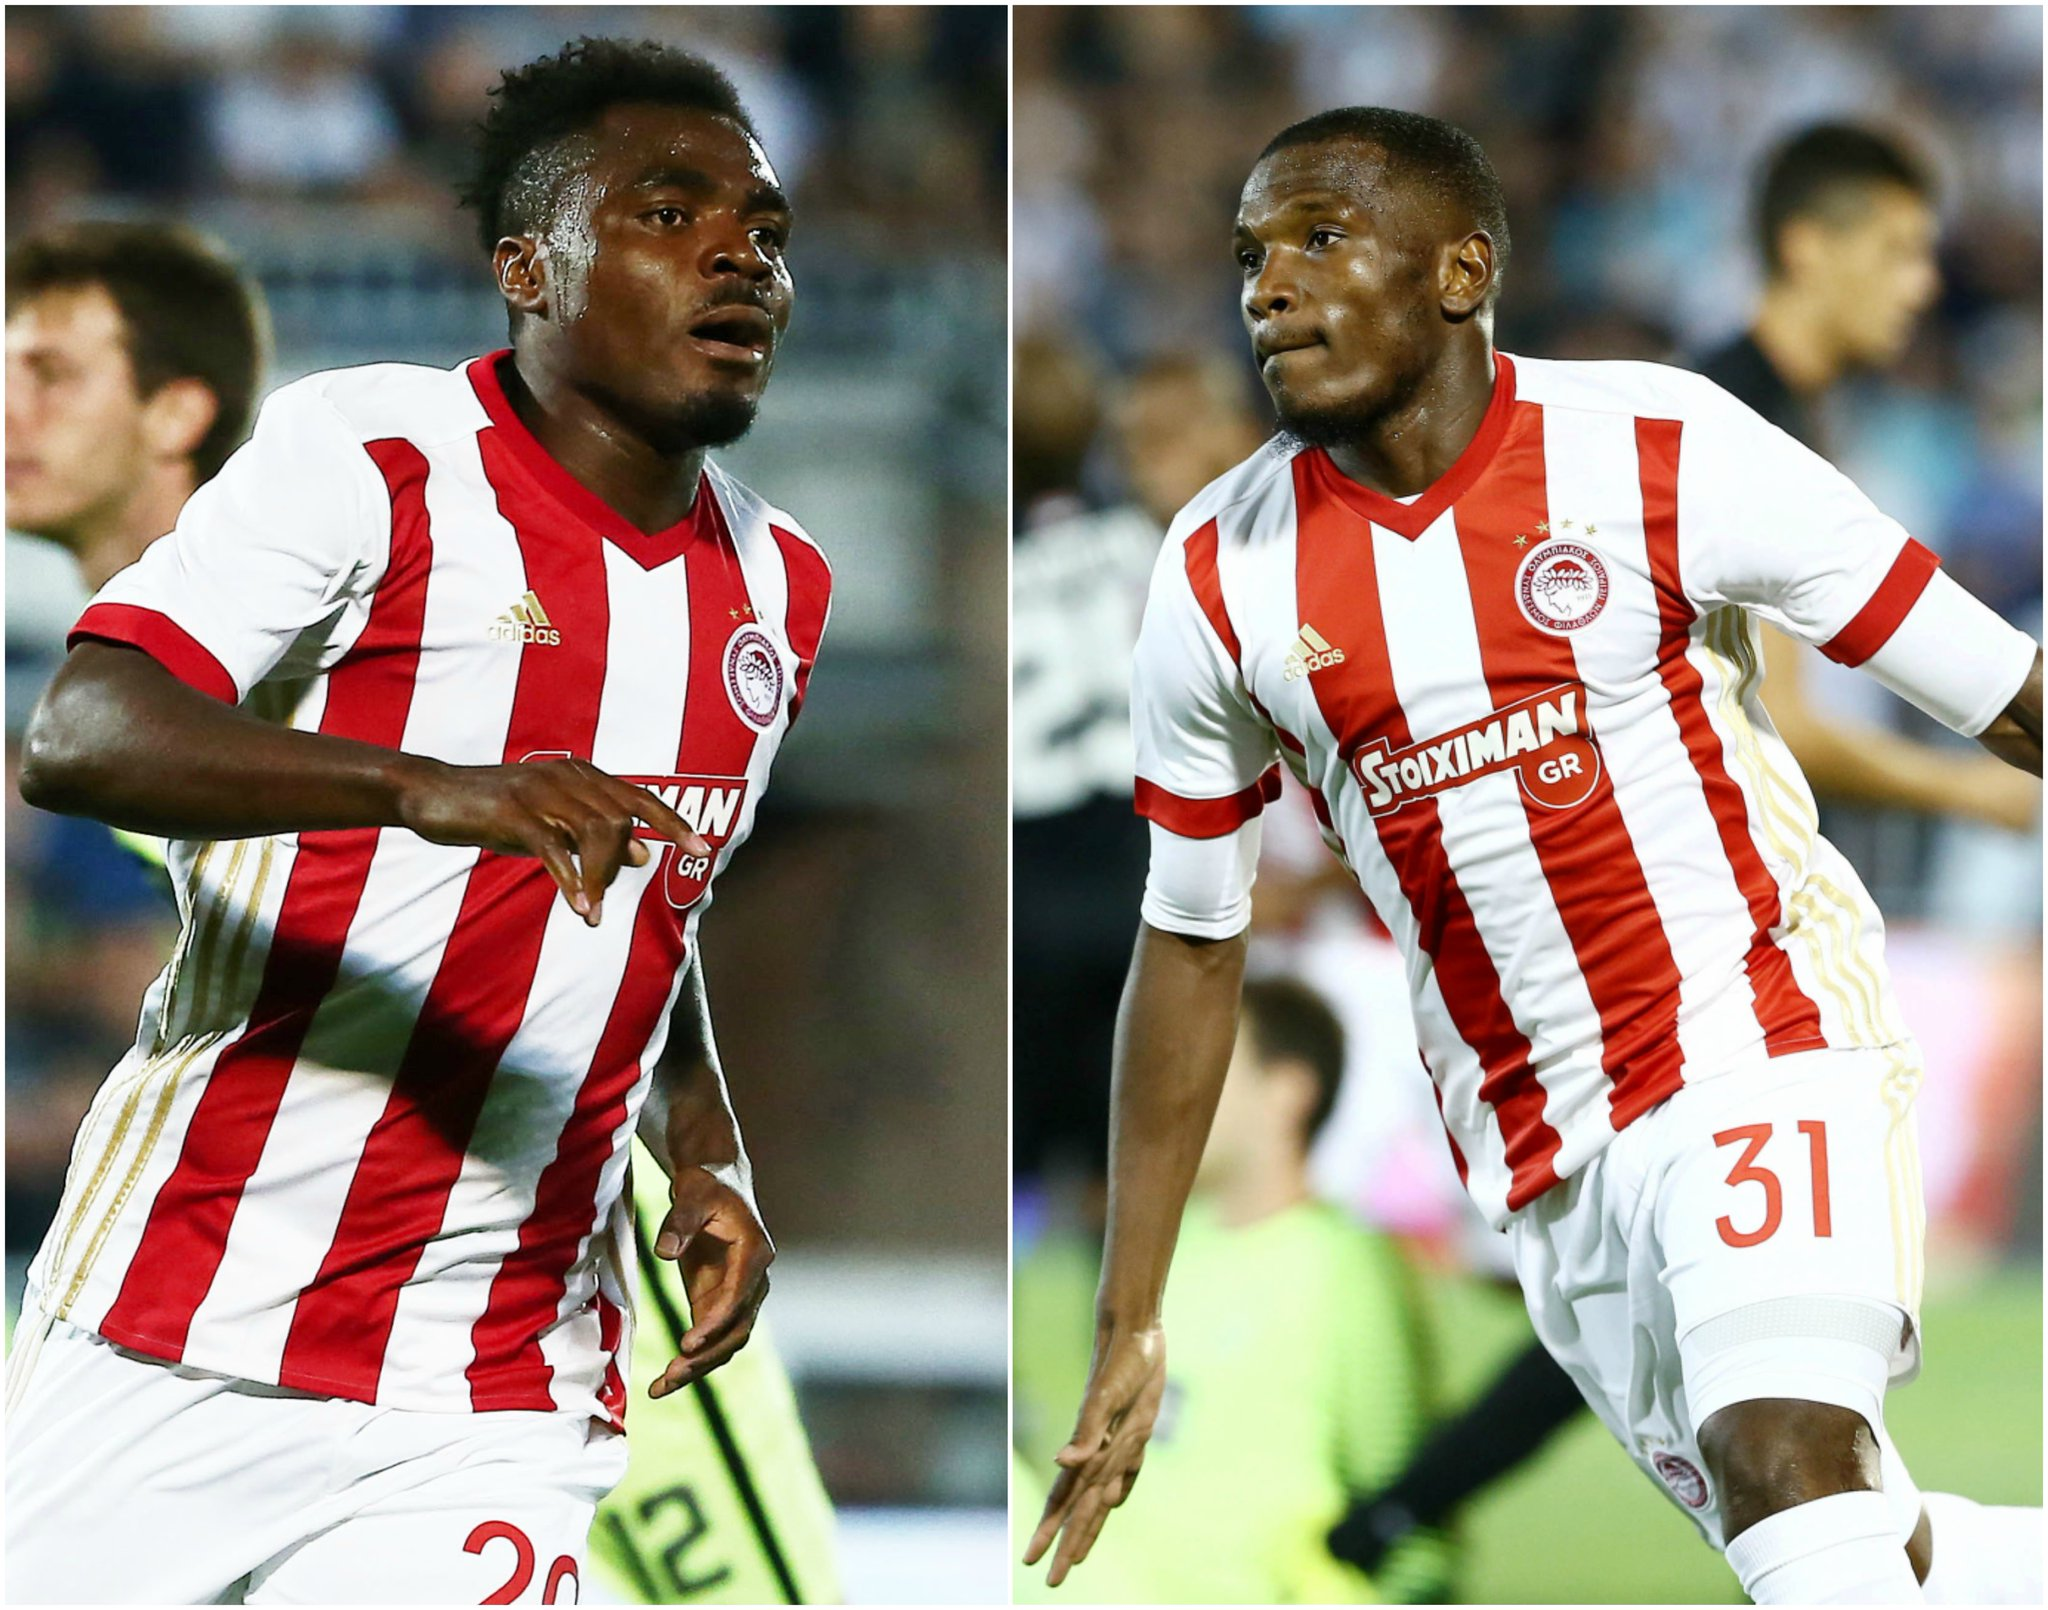 UCL Qualifiers: Emenike Scores, Samuel Benched As Olympiacos, CSKA Win